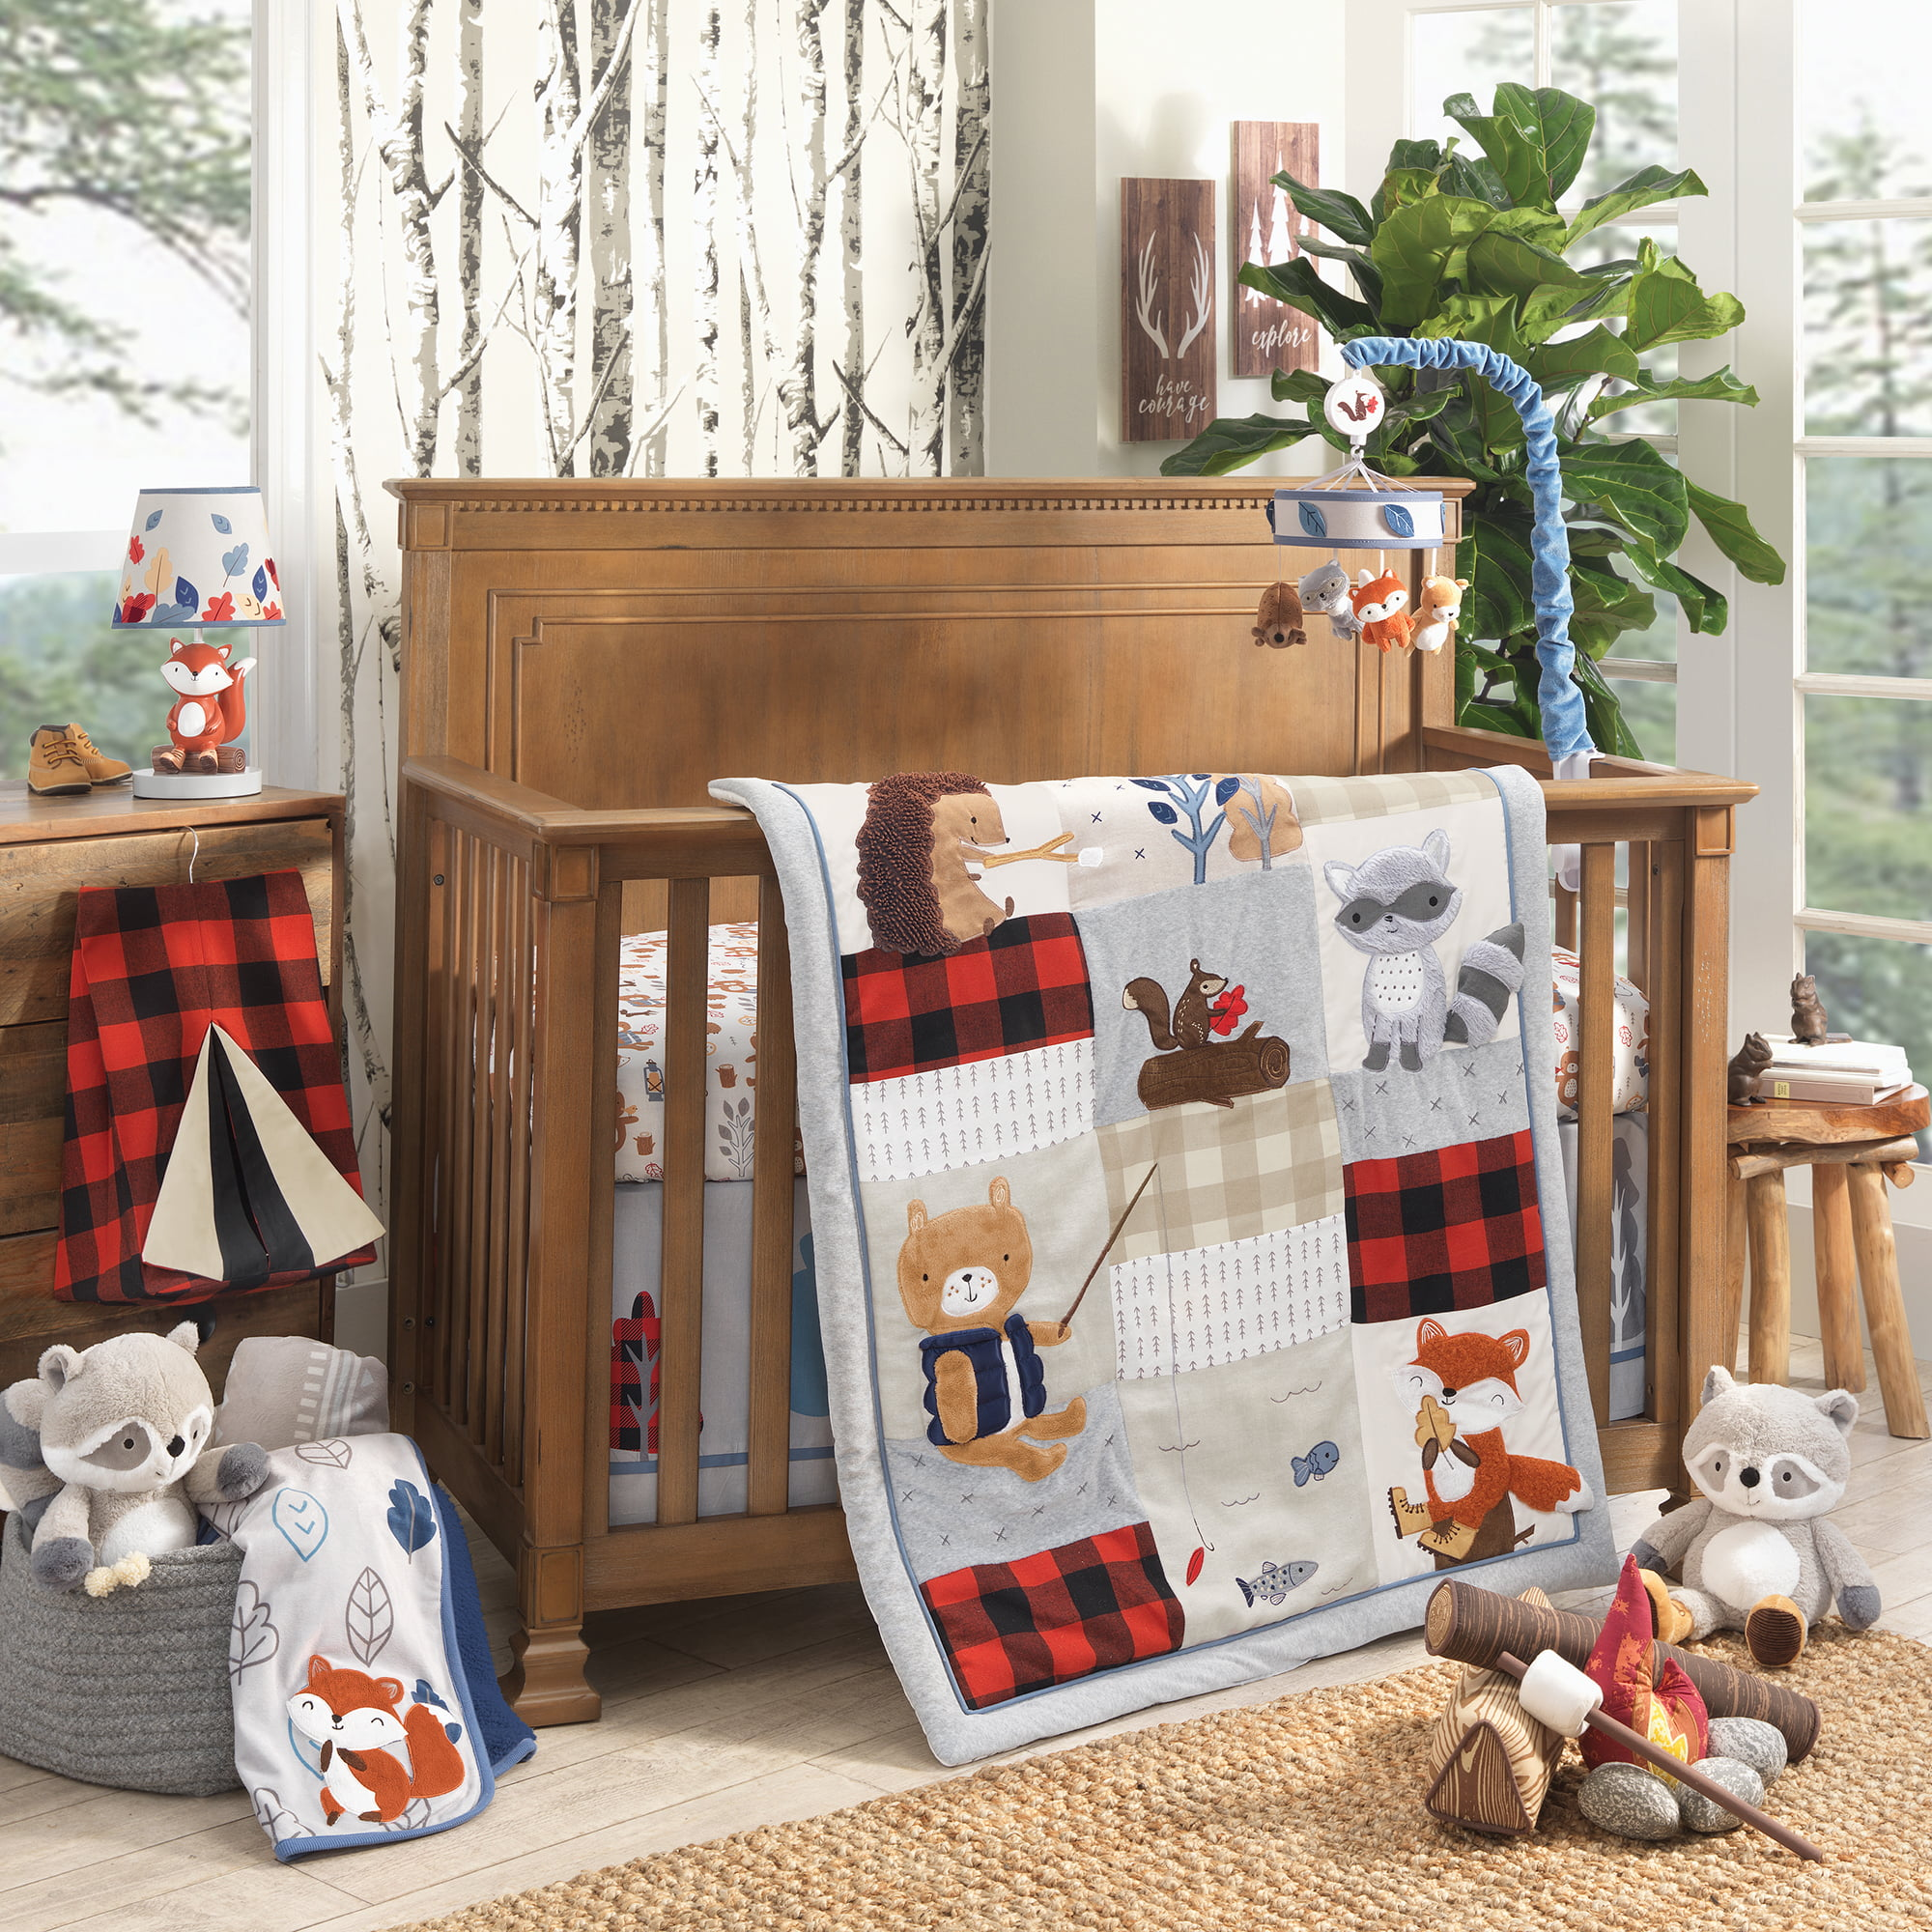 Lambs Ivy Little Campers 5 Piece Crib Bedding Set Blue Red Gray Beige